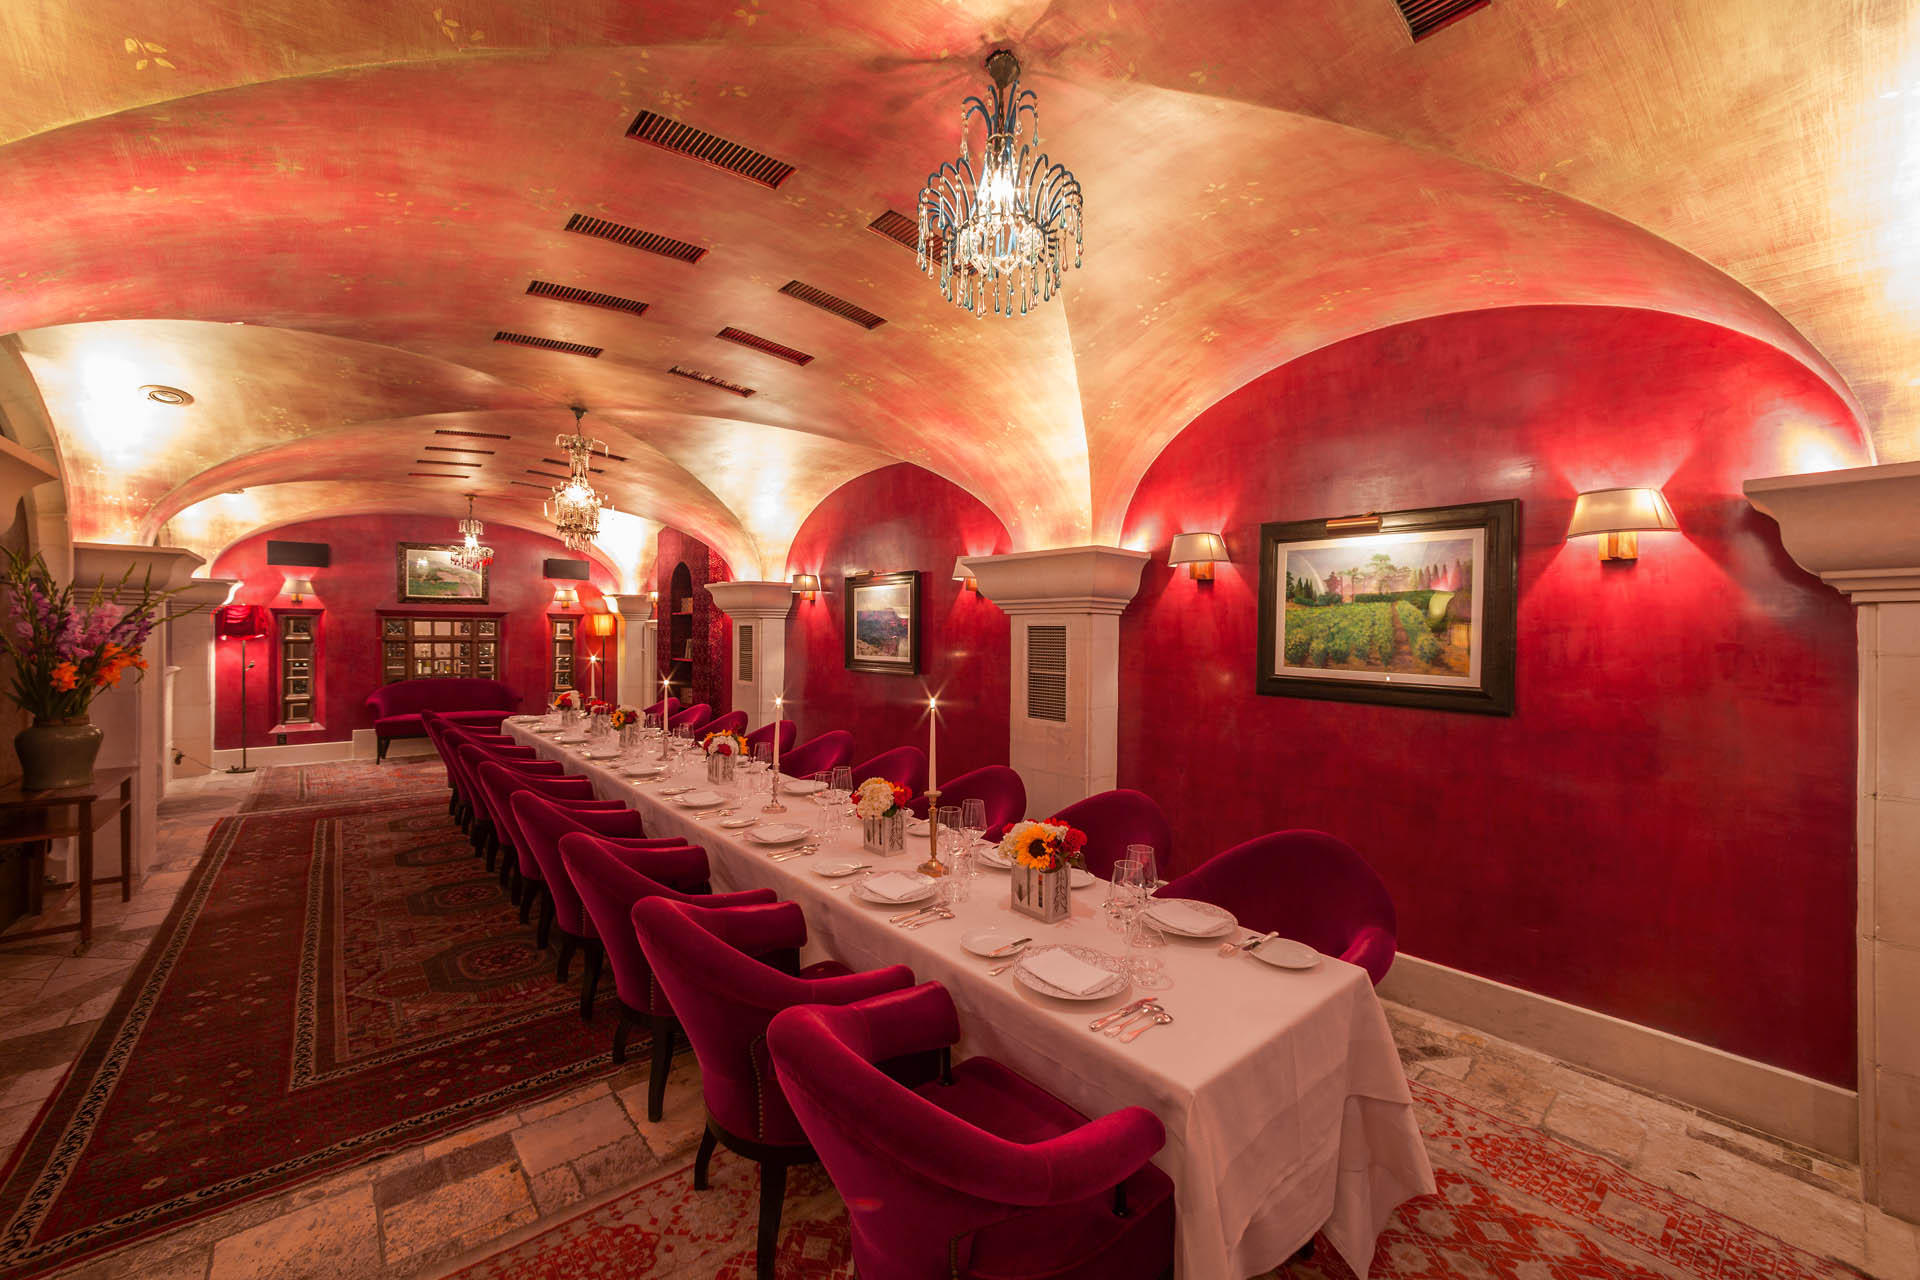 100 restaurants in nyc with private dining rooms 90 for Best restaurants with private dining rooms nyc